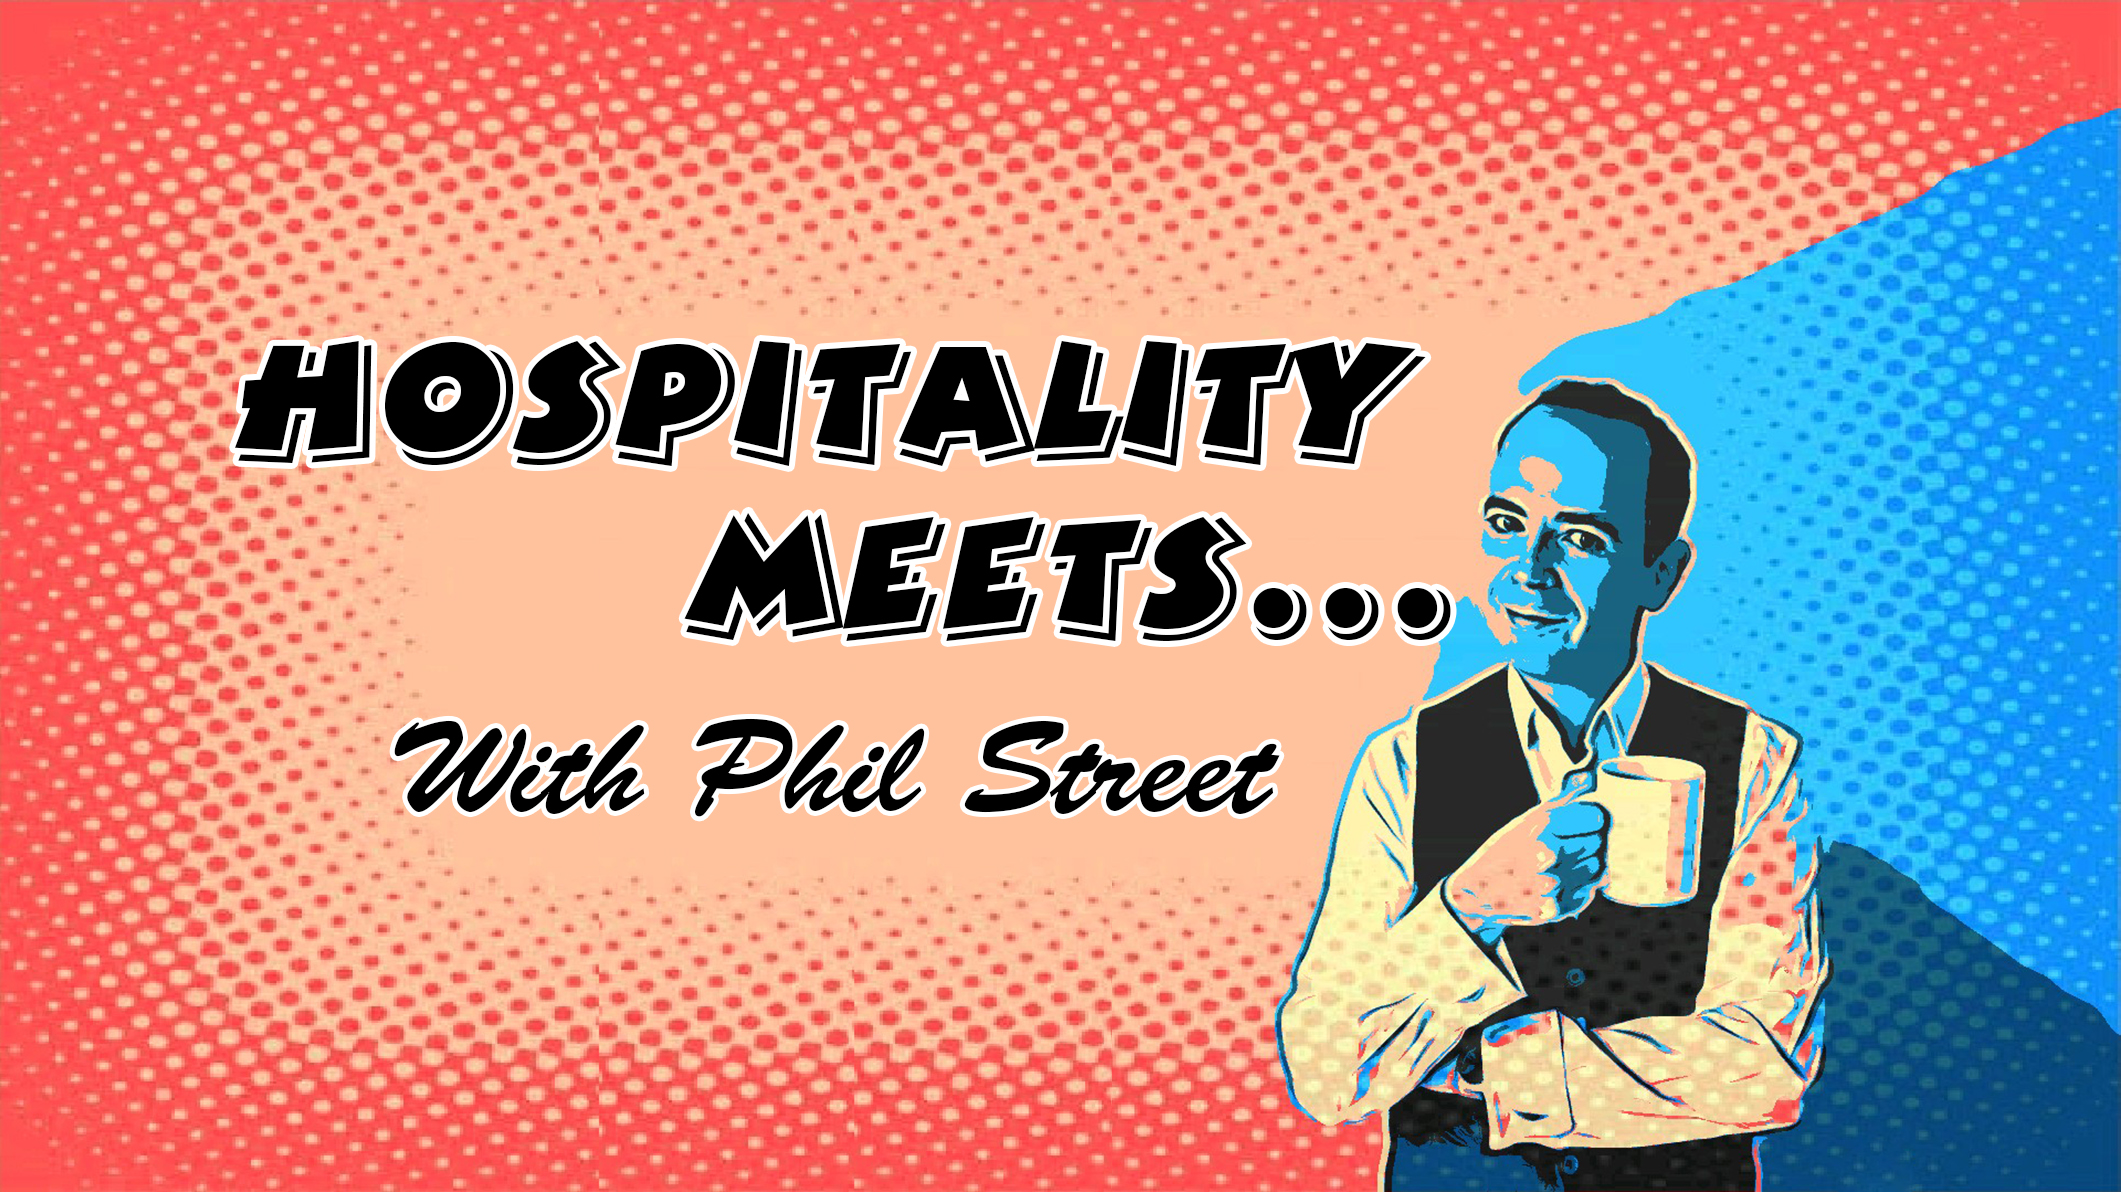 Hospitality Meets... with Phil Street